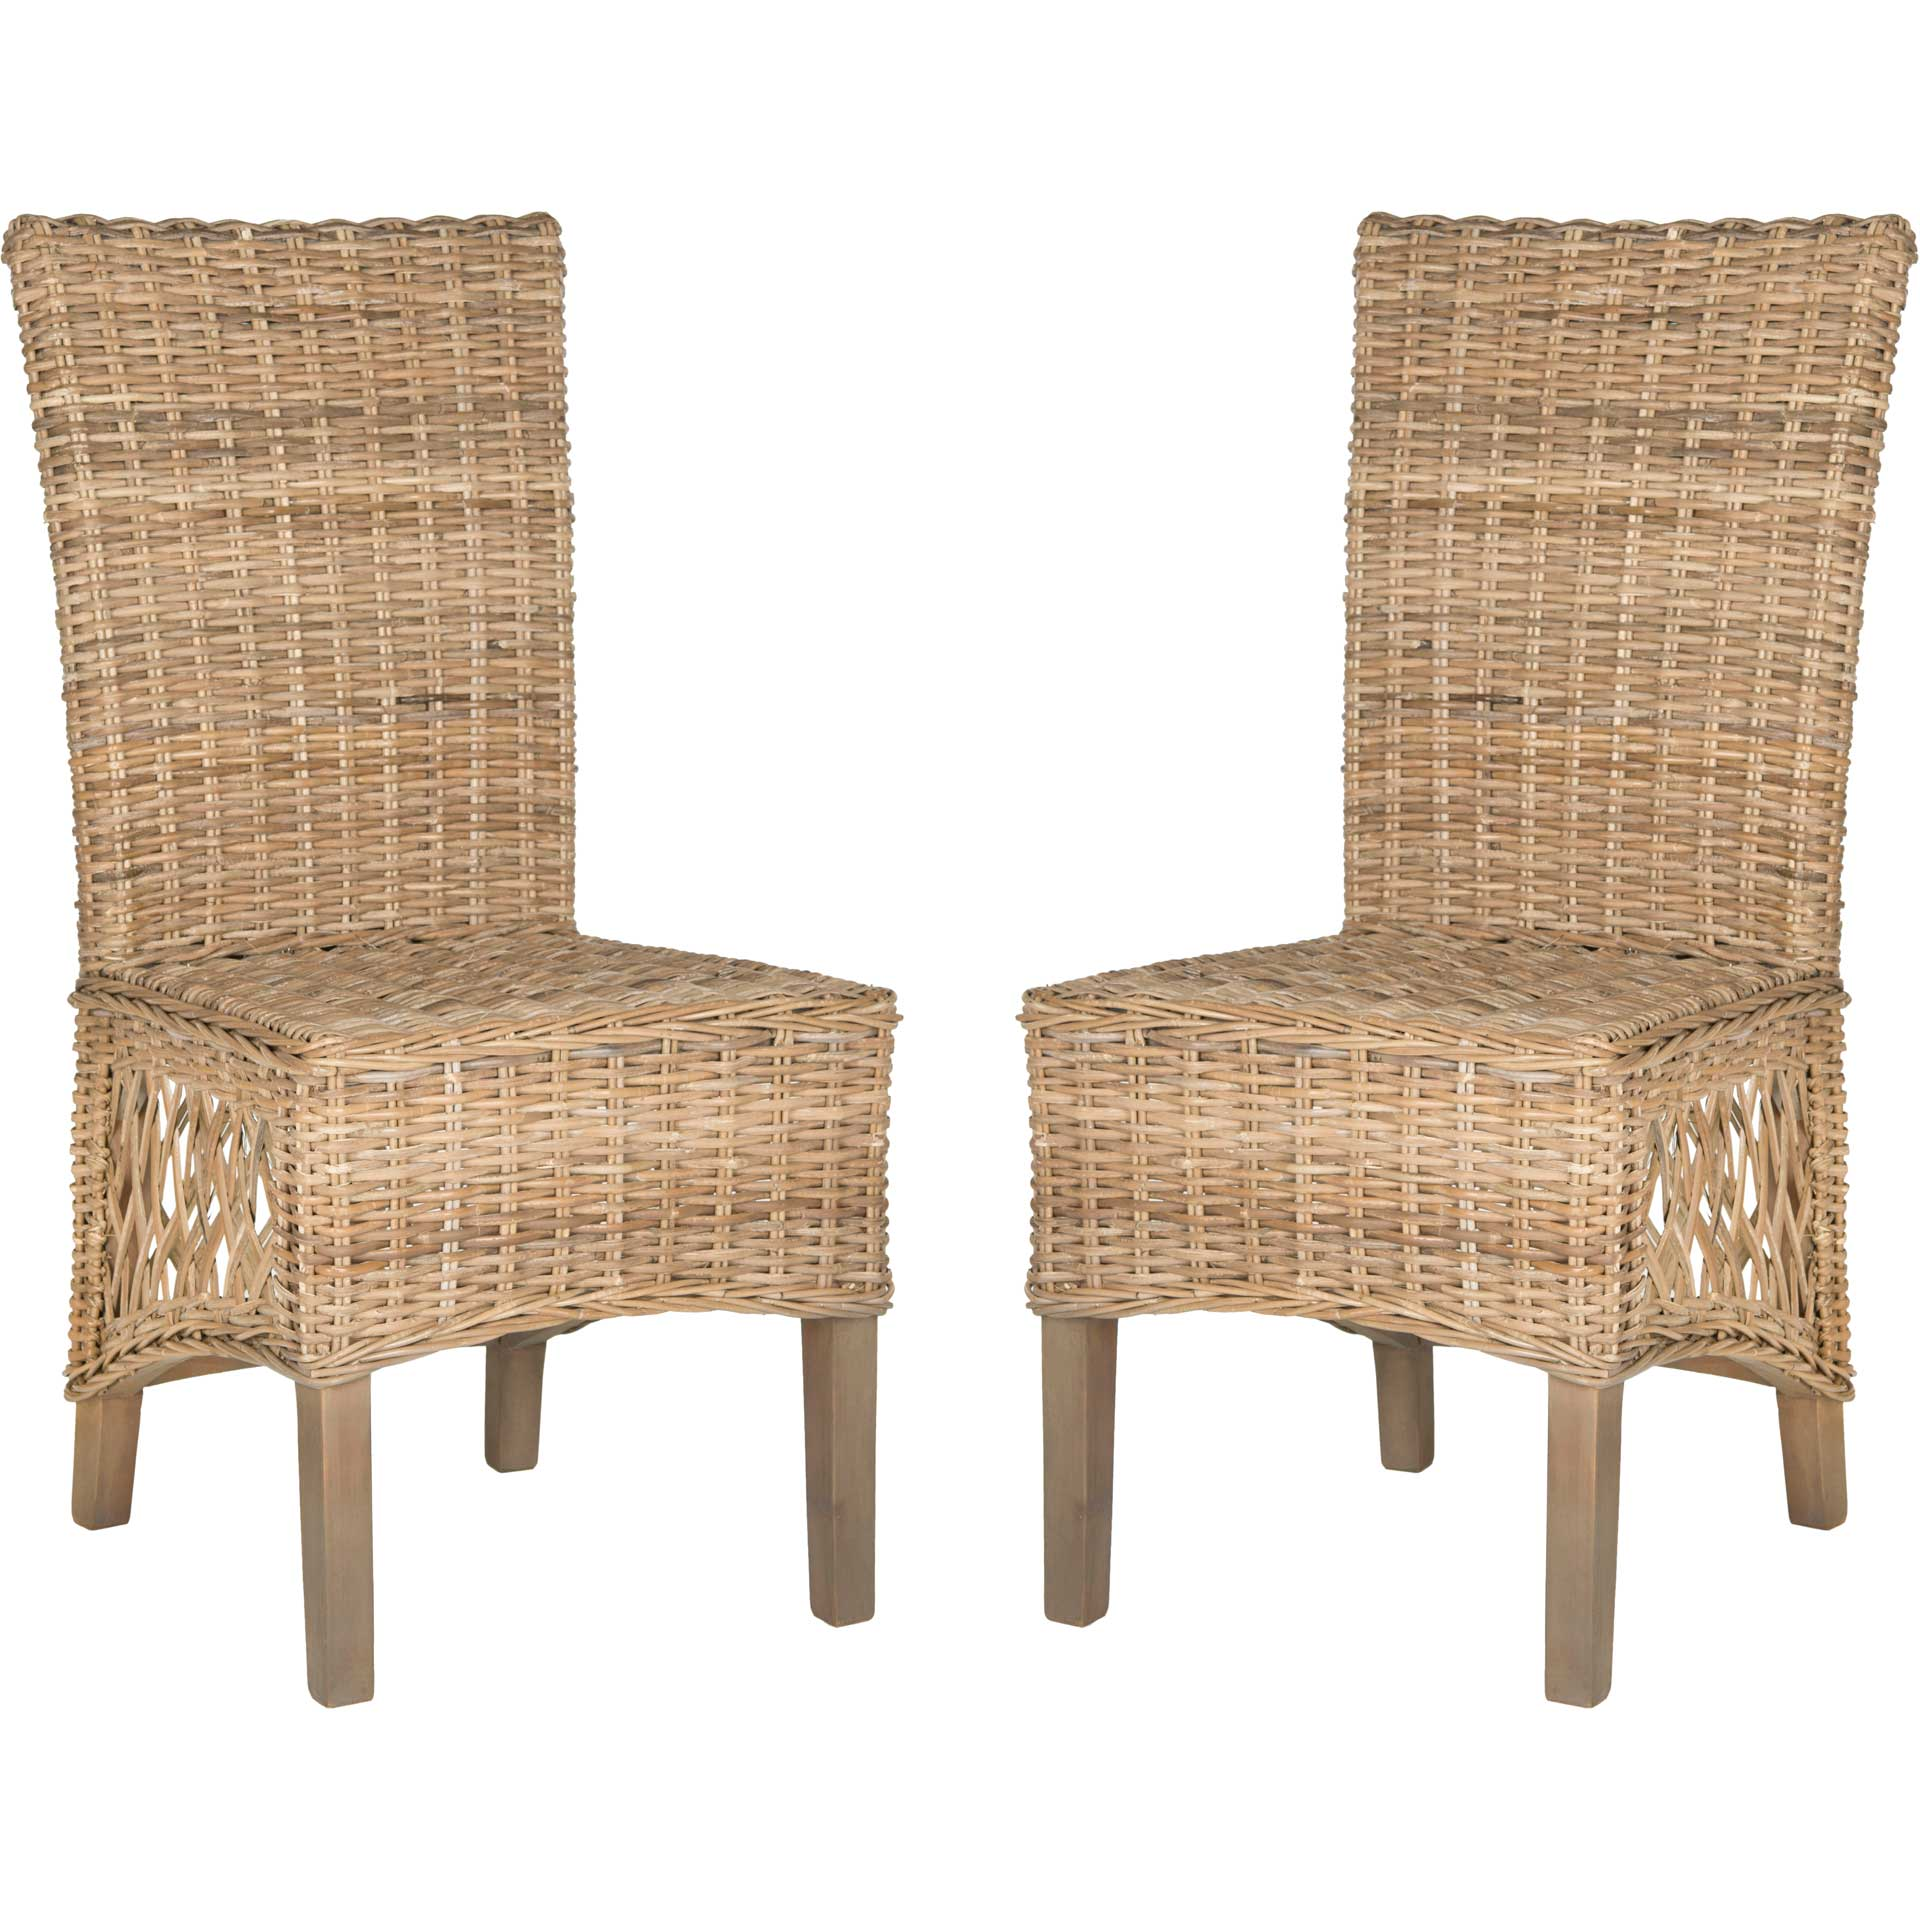 Sublime Rattan Side Chair Natural (Set of 2)